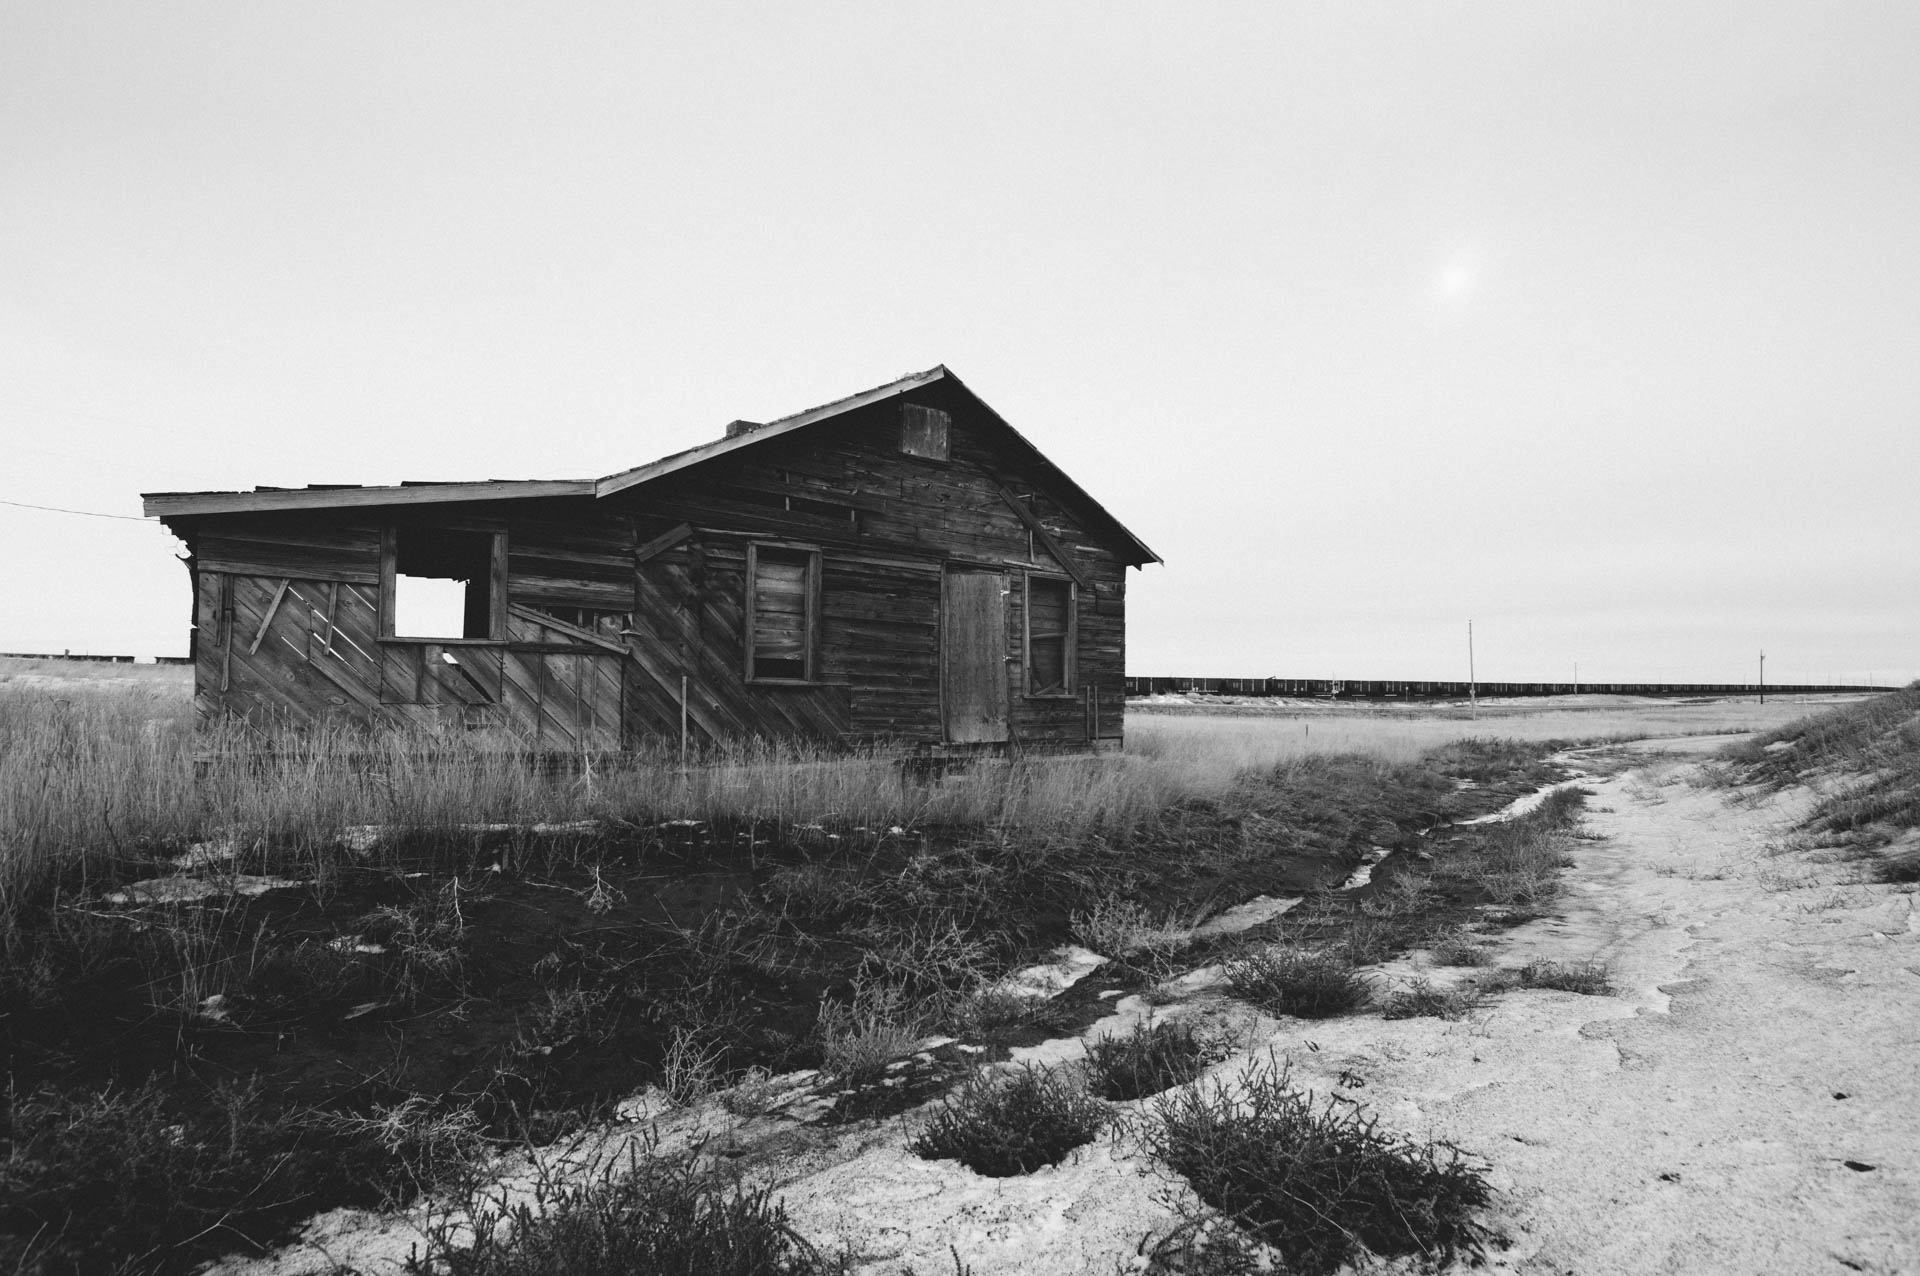 abandoned-farmstead-wyoming-grasslands-wright-wy-6180